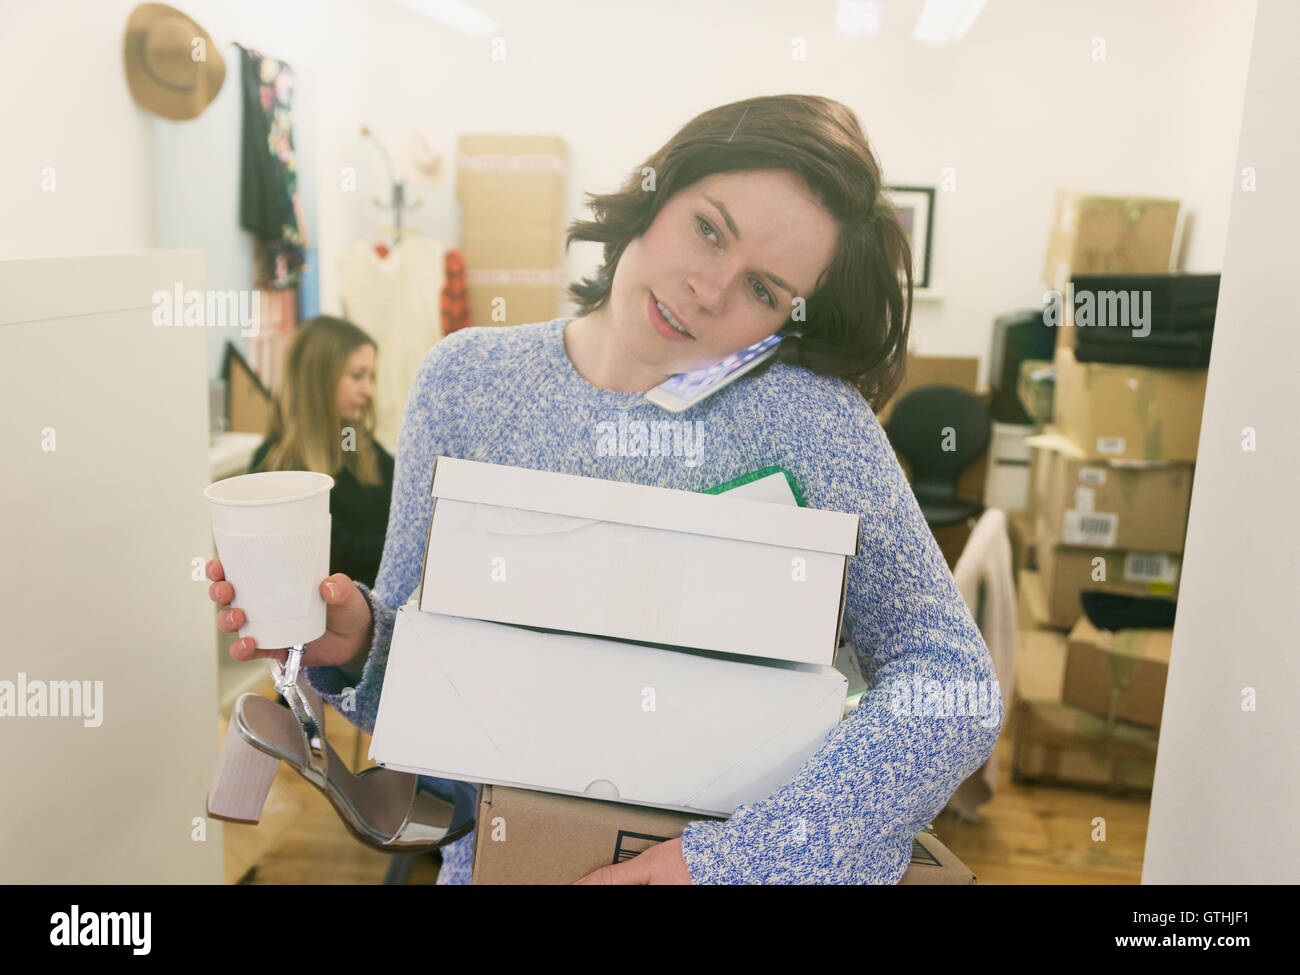 Fashion buyer multitasking carrying shoe boxes, coffee and talking on cell phone - Stock Image